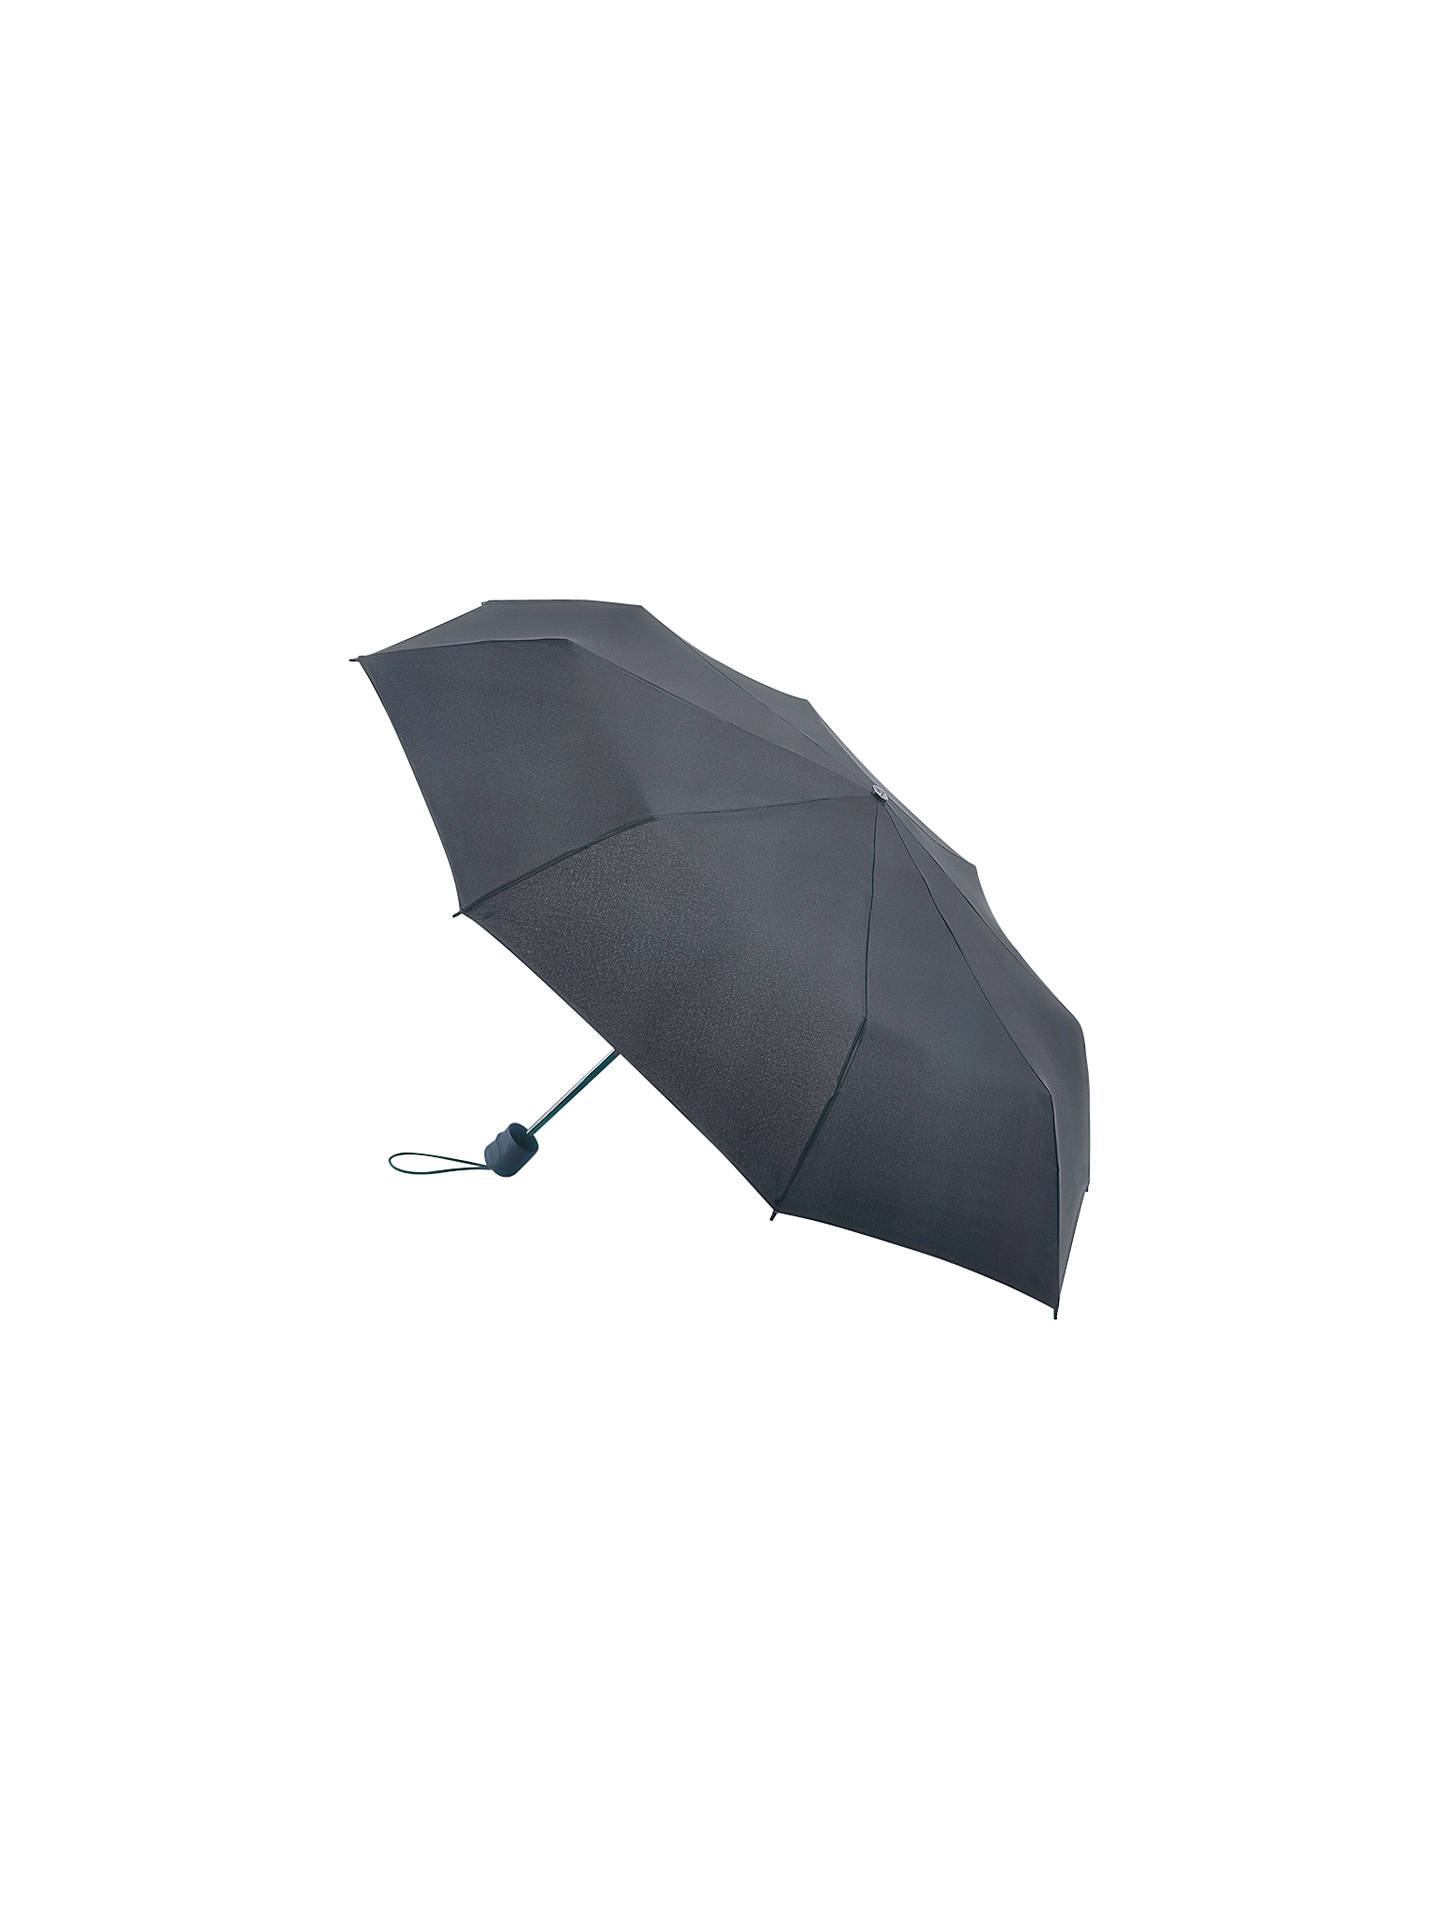 a487562d2aea Buy Fulton Hurricane Umbrella, Black Online at johnlewis.com ...